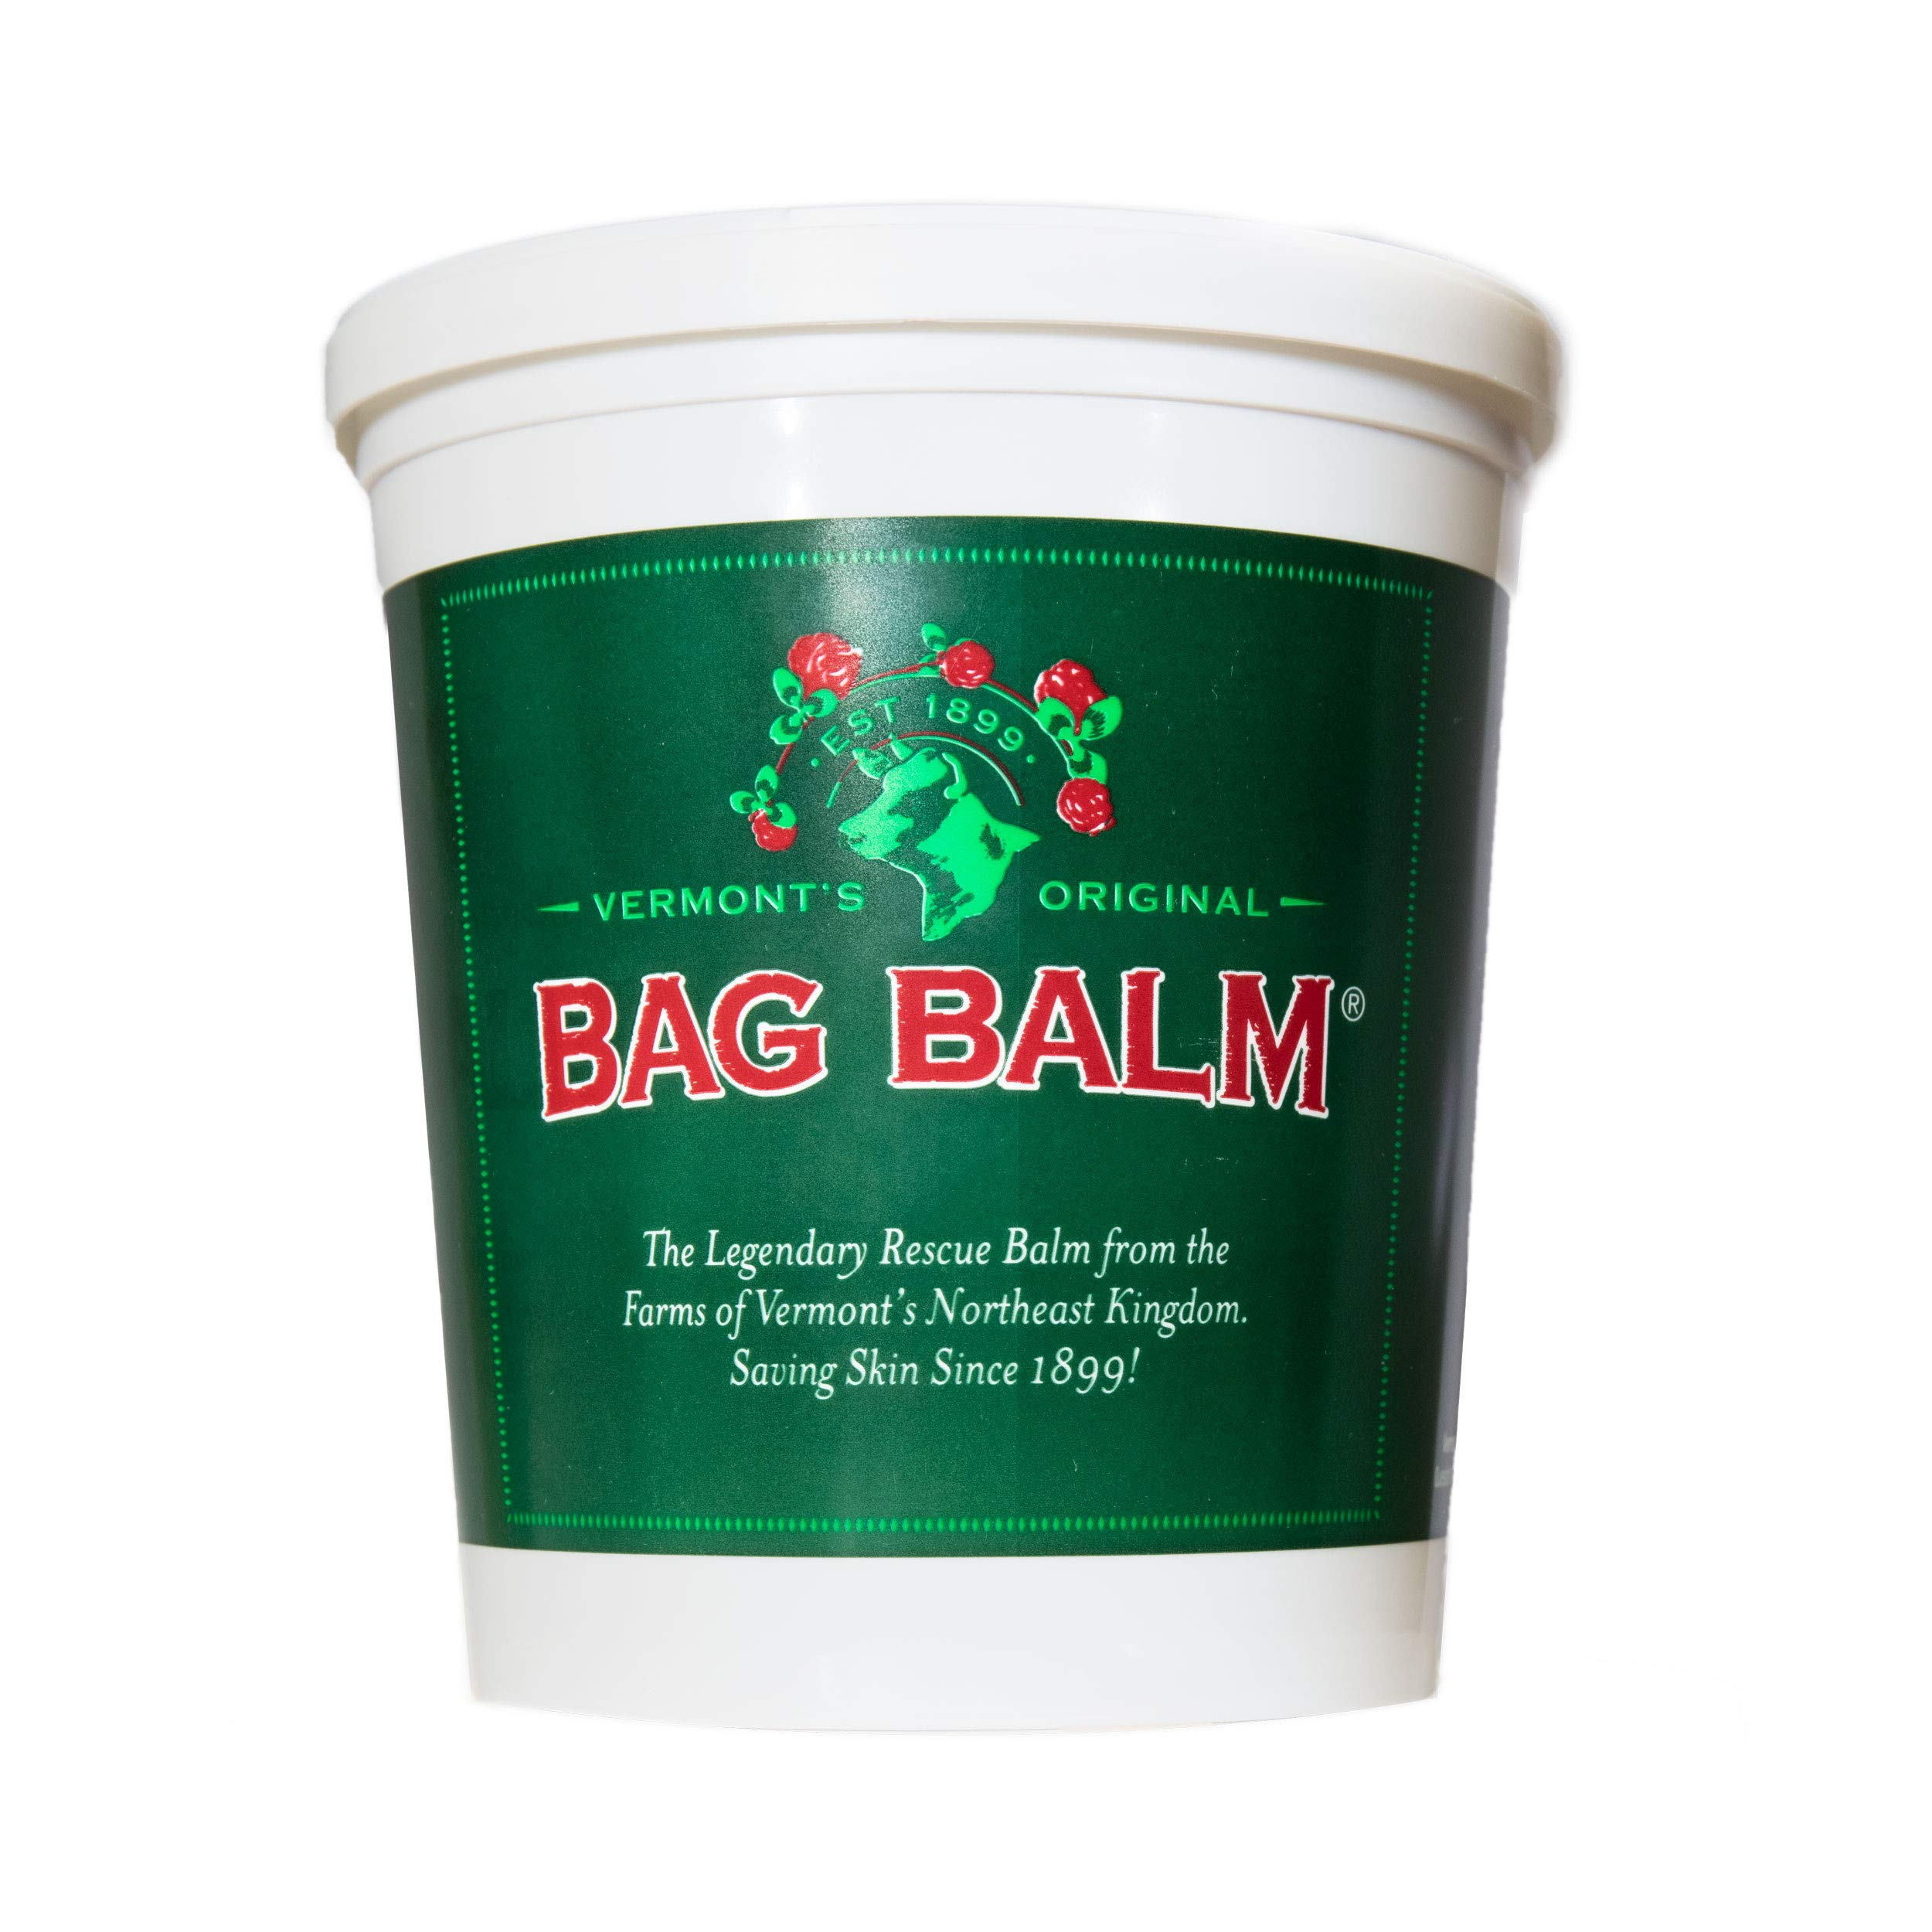 Bag Balm Vermont's Original 4.5 Pound Pail (72 Ounces) for Cracked Hands, Dry Skin, Moisturizing Lotion Salve by Bag Balm